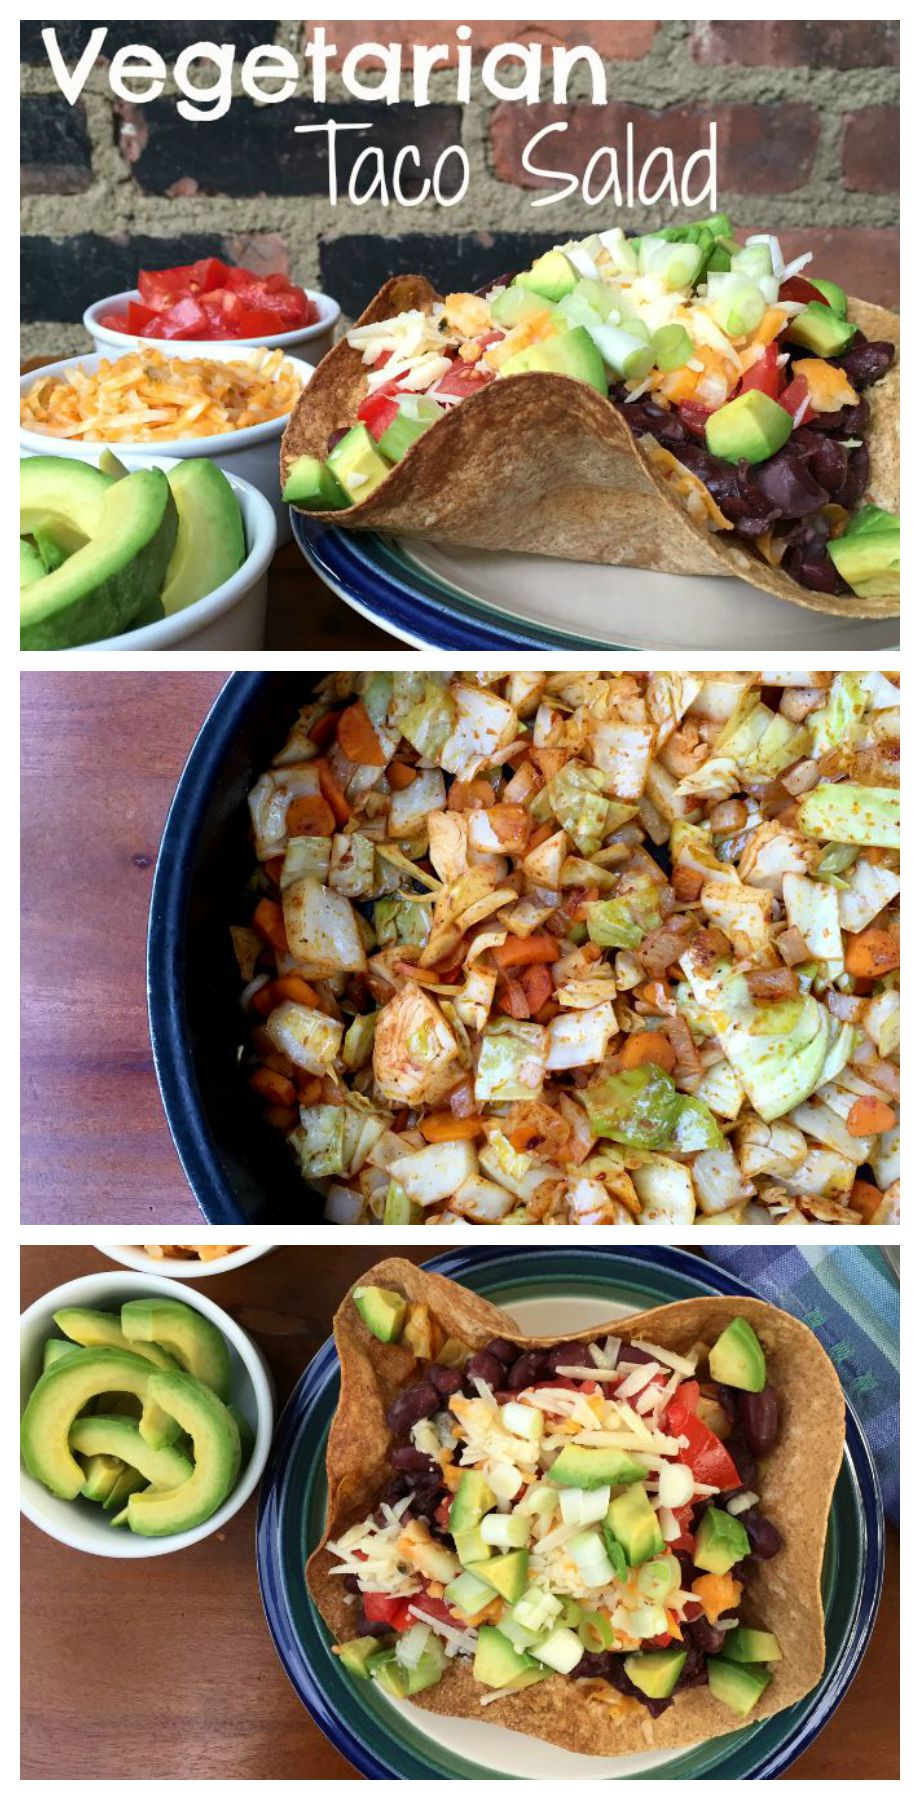 This quick, easy and spicy Vegetarian Taco Salad combines cabbage, carrots and beans for a mouth watering medley of flavors.